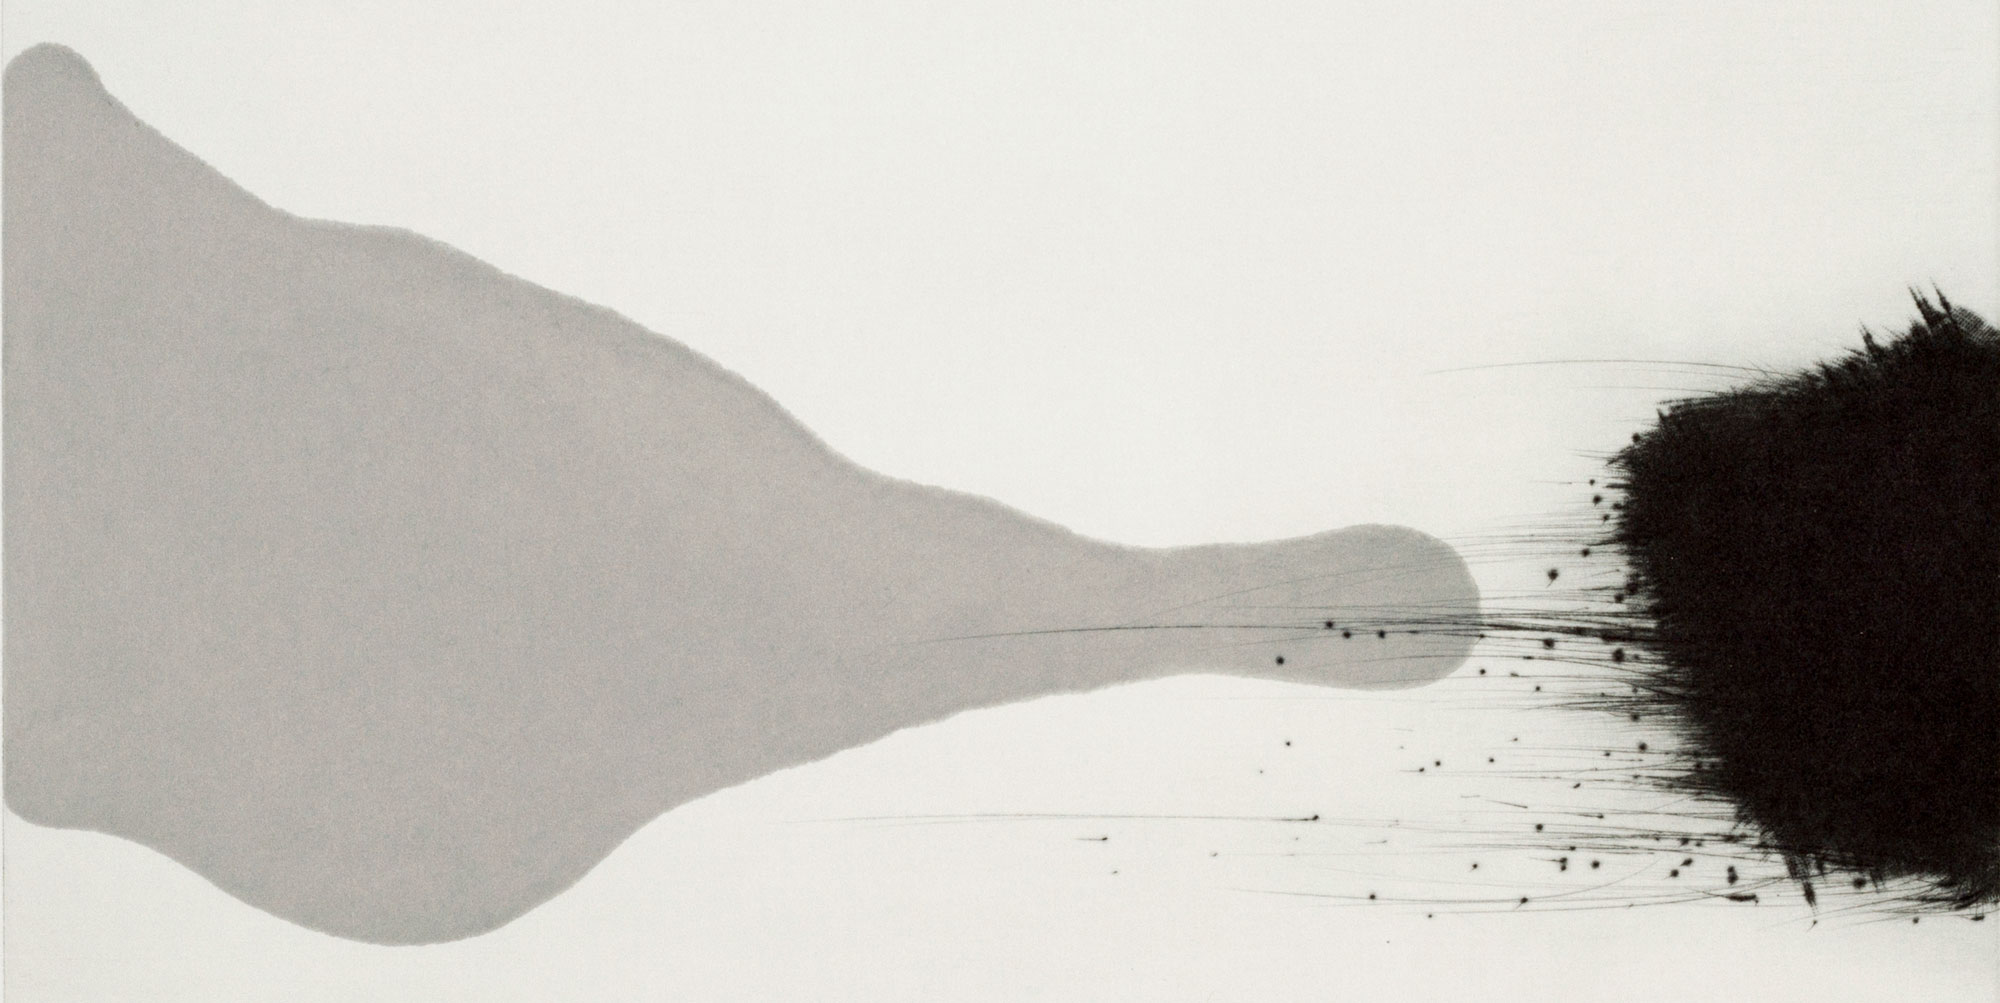 Tiina Kivinen. How you care for Tamagotchi I – detail. Mezzotint, drypoint, aquatint. 37 x 37 cm